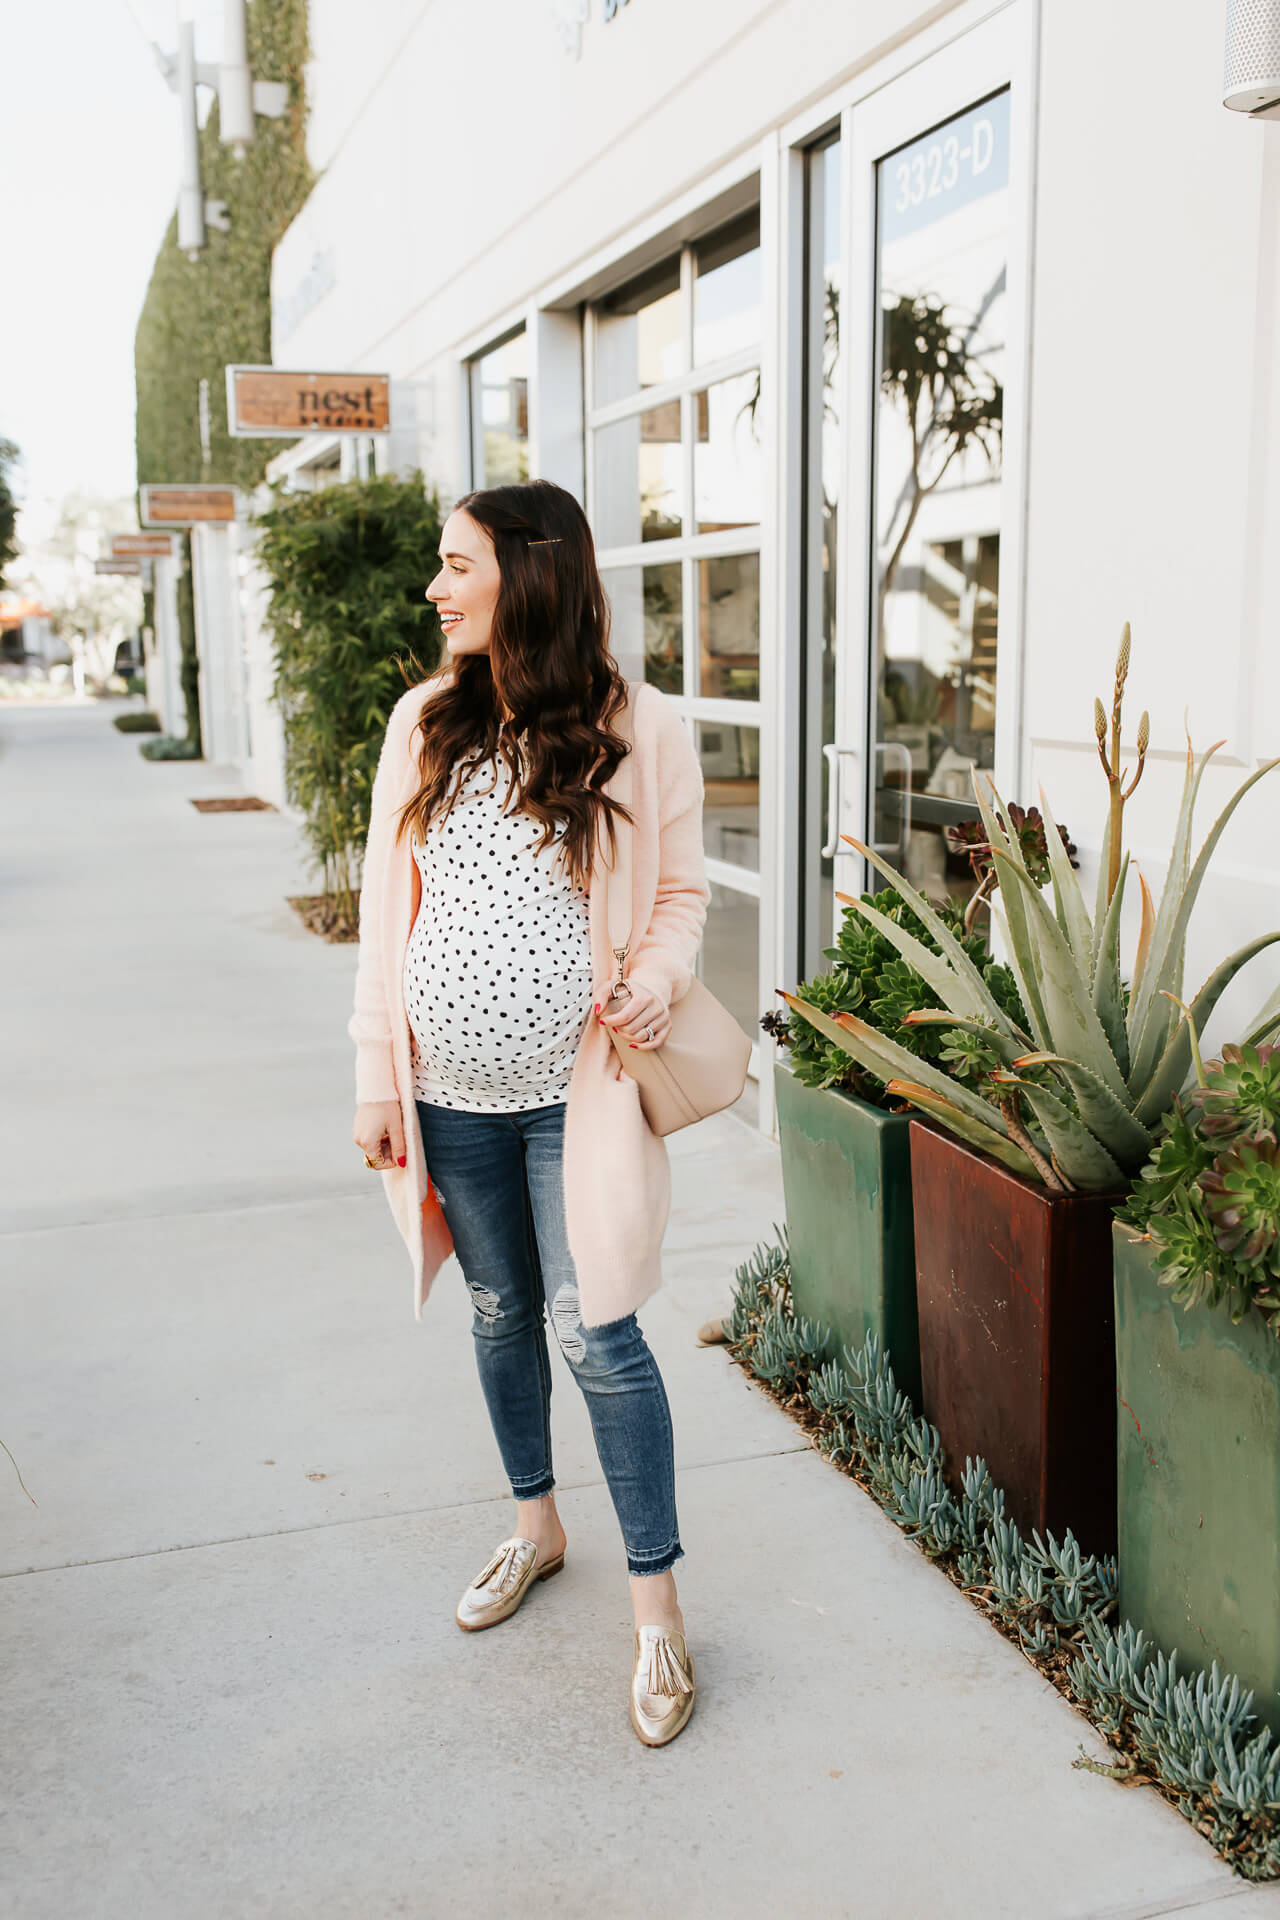 I love a polka dot top paired with jeans! - M Loves M @marmar